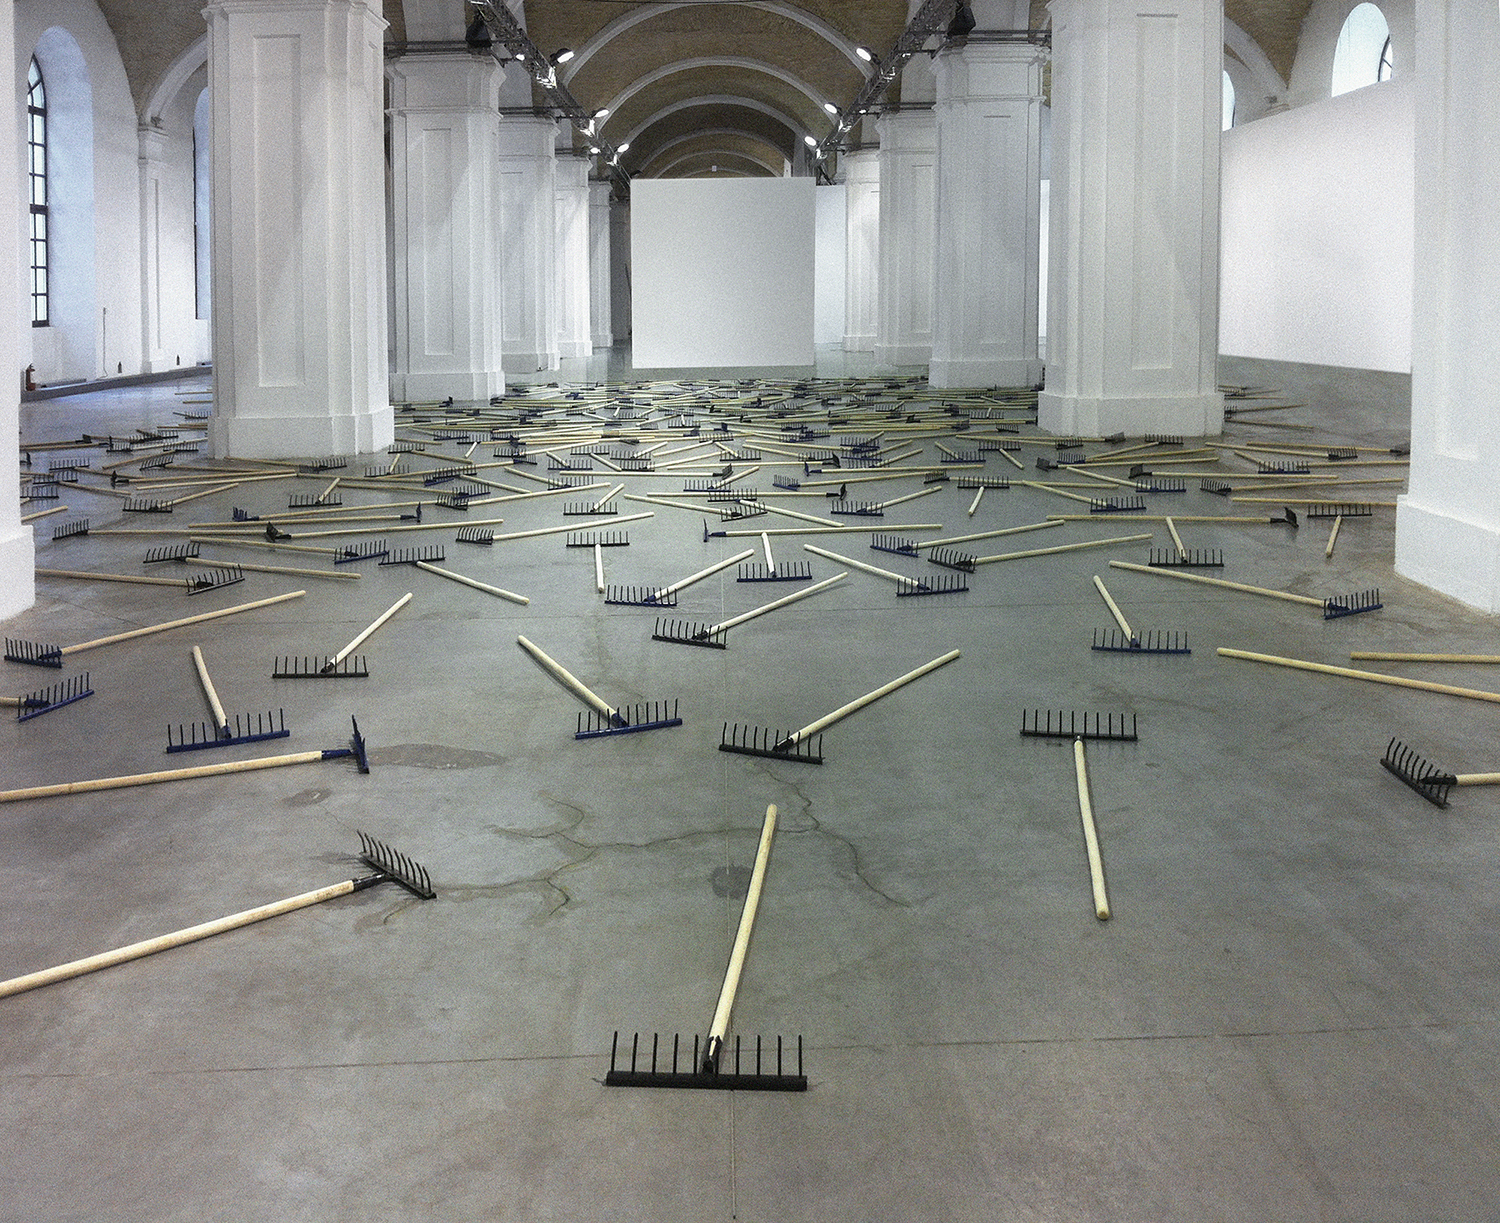 Installation of 350 rakes, which compulsively makes one thinking about each step.   Do not step on rake   2014, installation. Raster lamps, wires, metal profile, dimensions variable